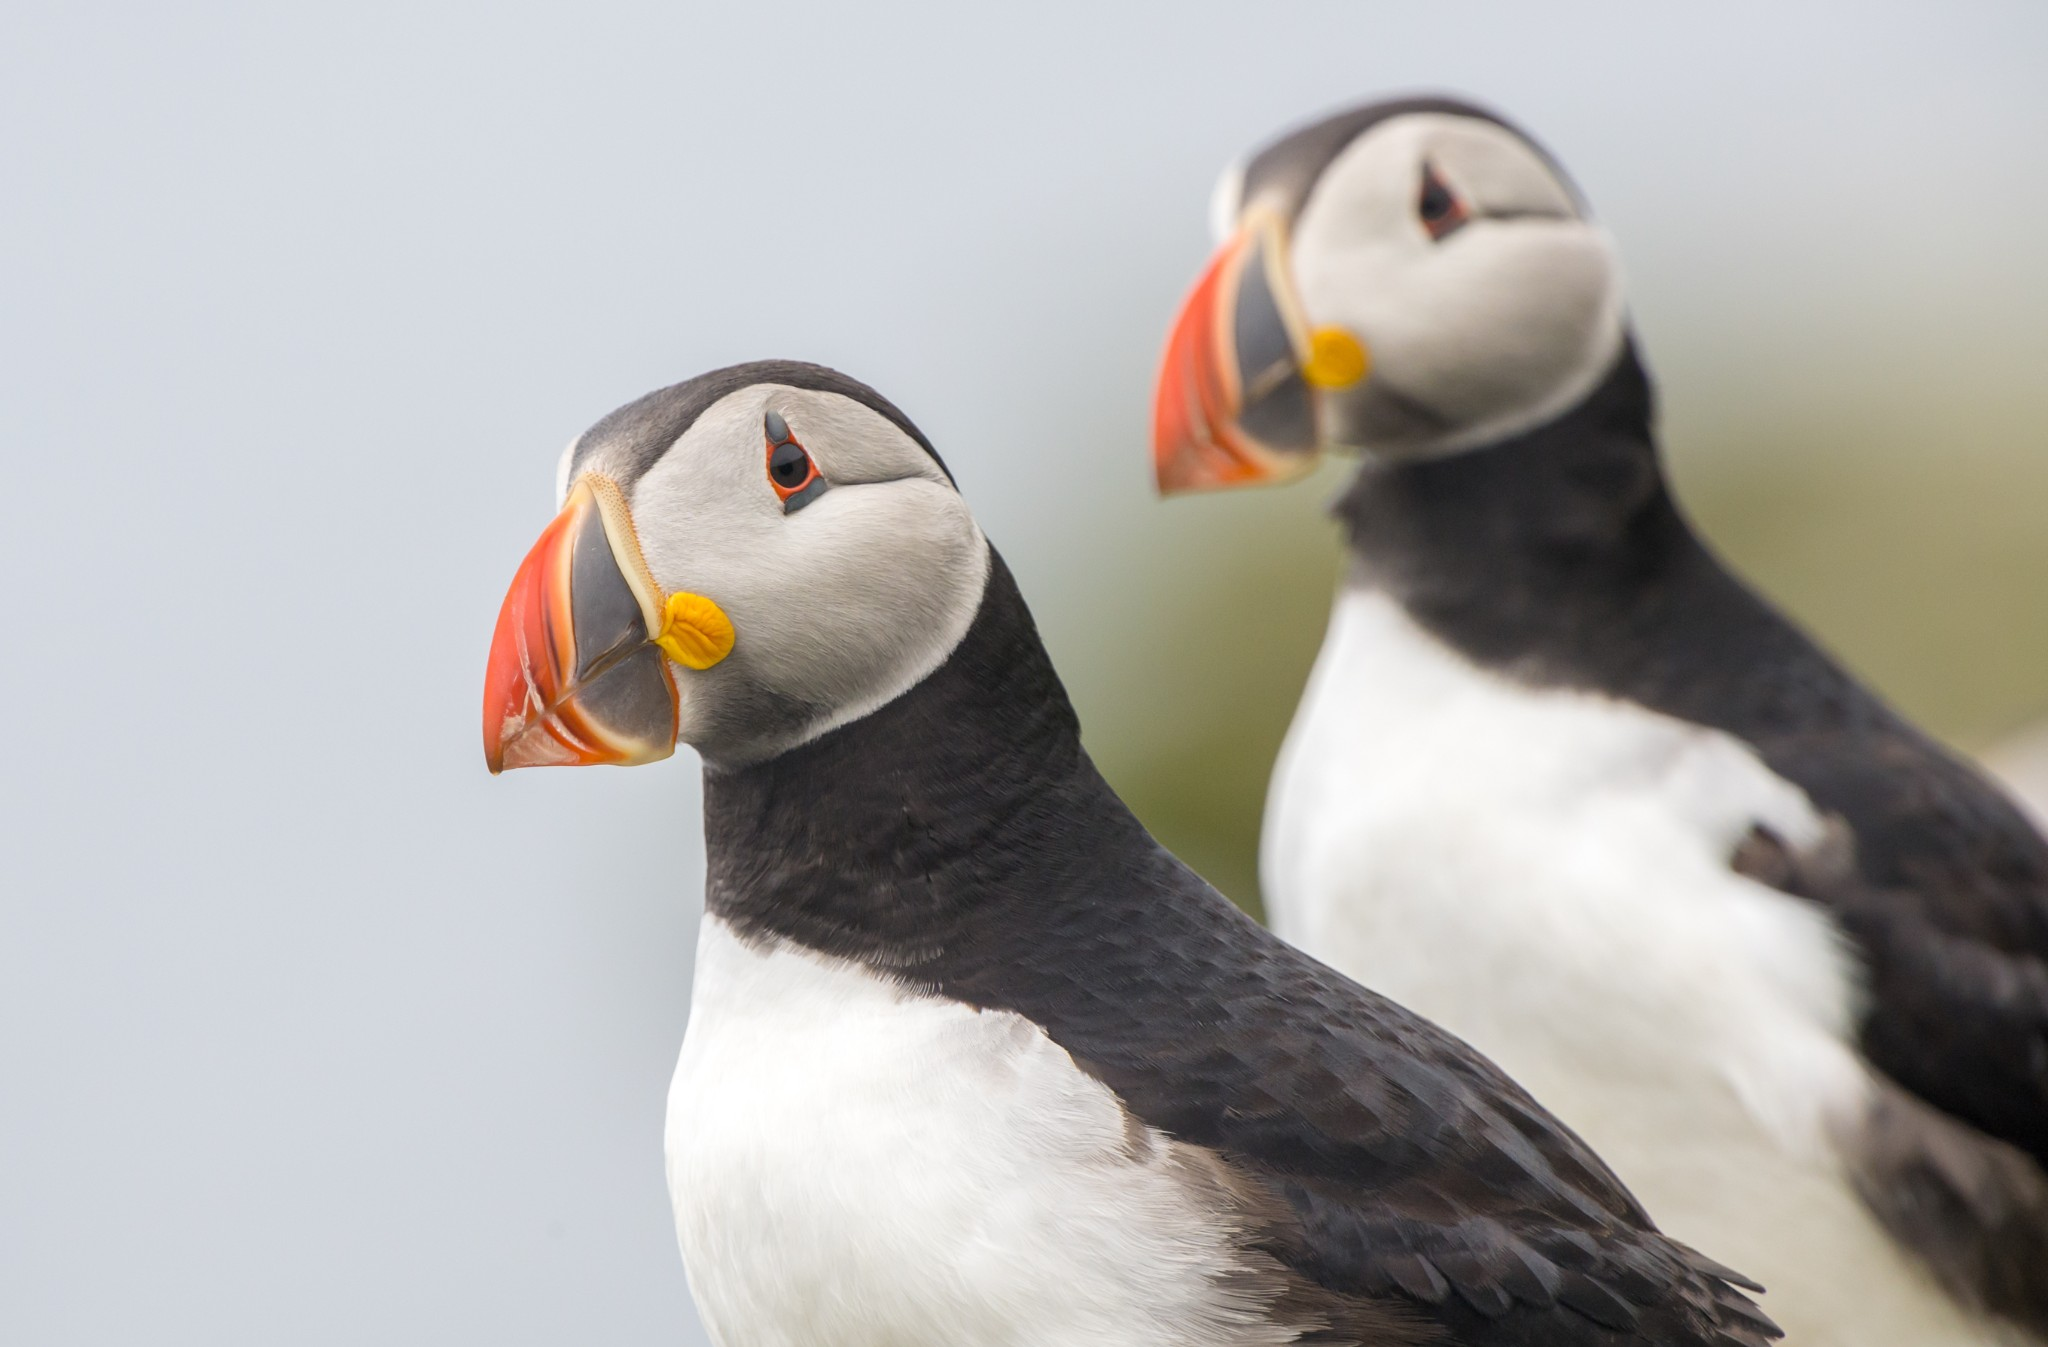 Puffins in Orkney - image by Raymond Besant